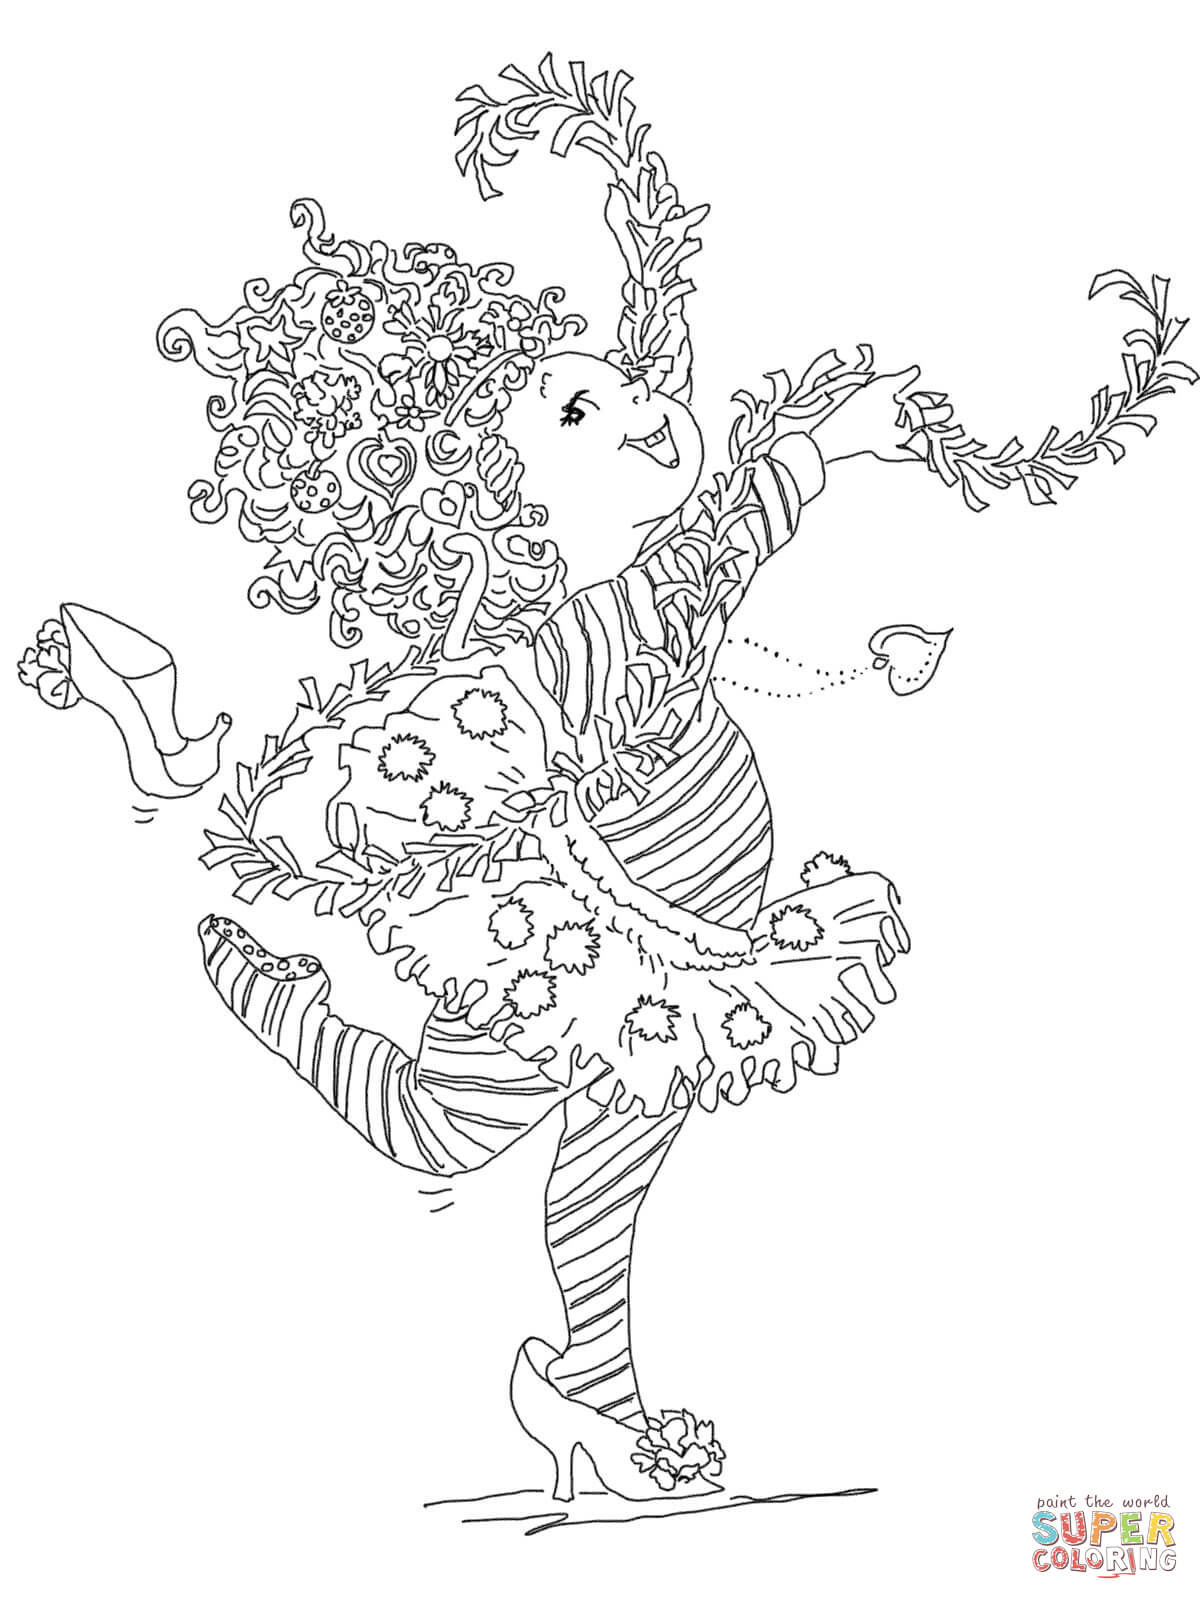 Fancy Nancy Coloring Pages Free Coloring Pages Download | Xsibe ...